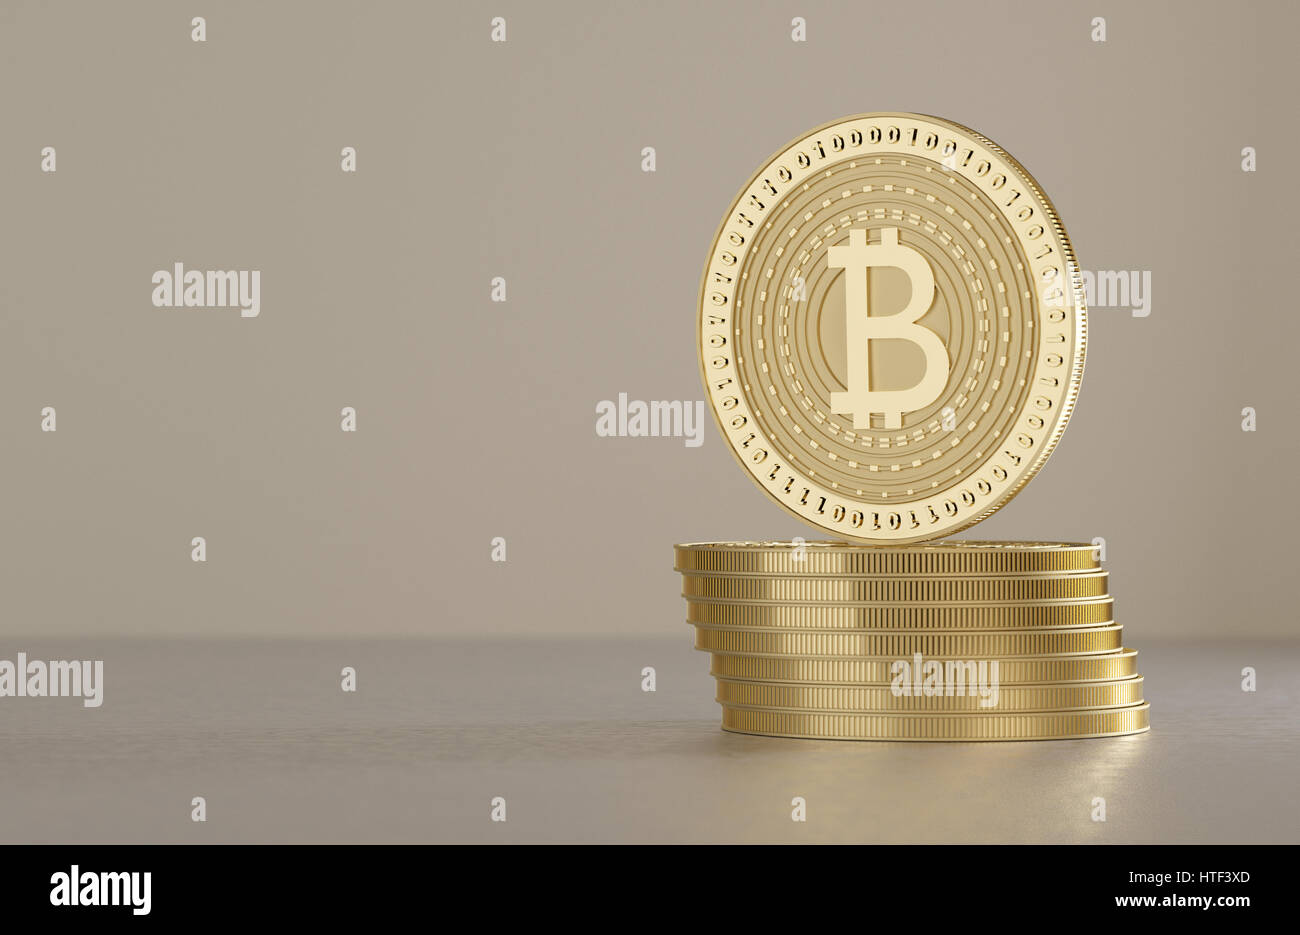 Two shiny golden bitcoins standing on metal floor as concept for financial technology and crypto-currency Stock Photo